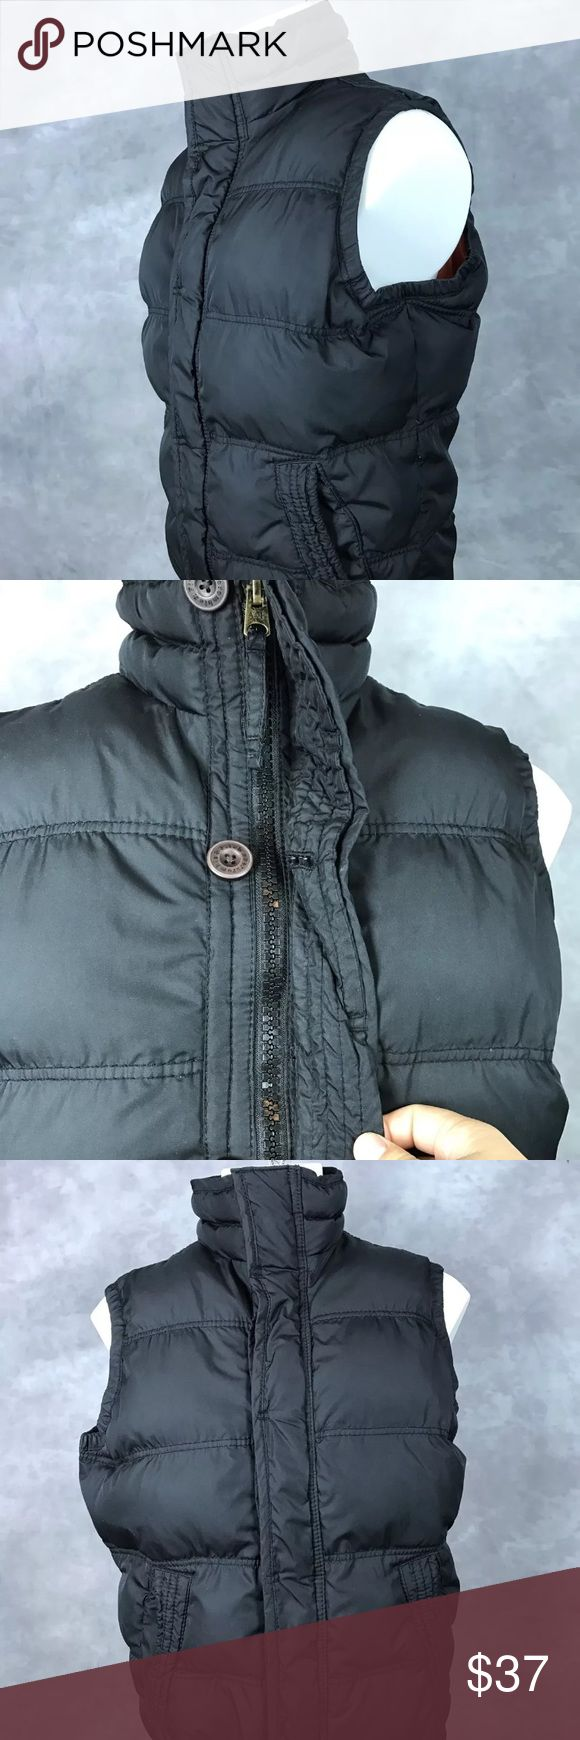 Abercrombie And Fitch summit rock Down vest Great used condition Abercrombie & Fitch Jackets & Coats Vests